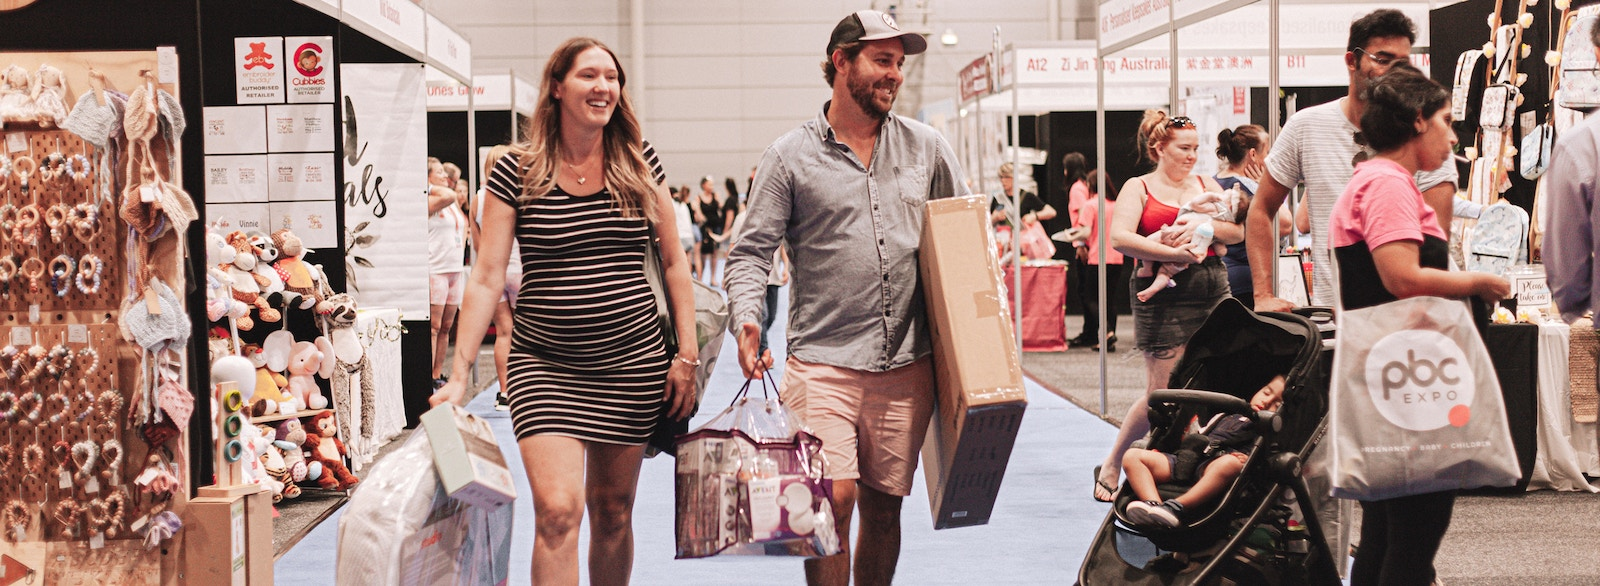 Woman and Man walking the expo floor holding products they have bought